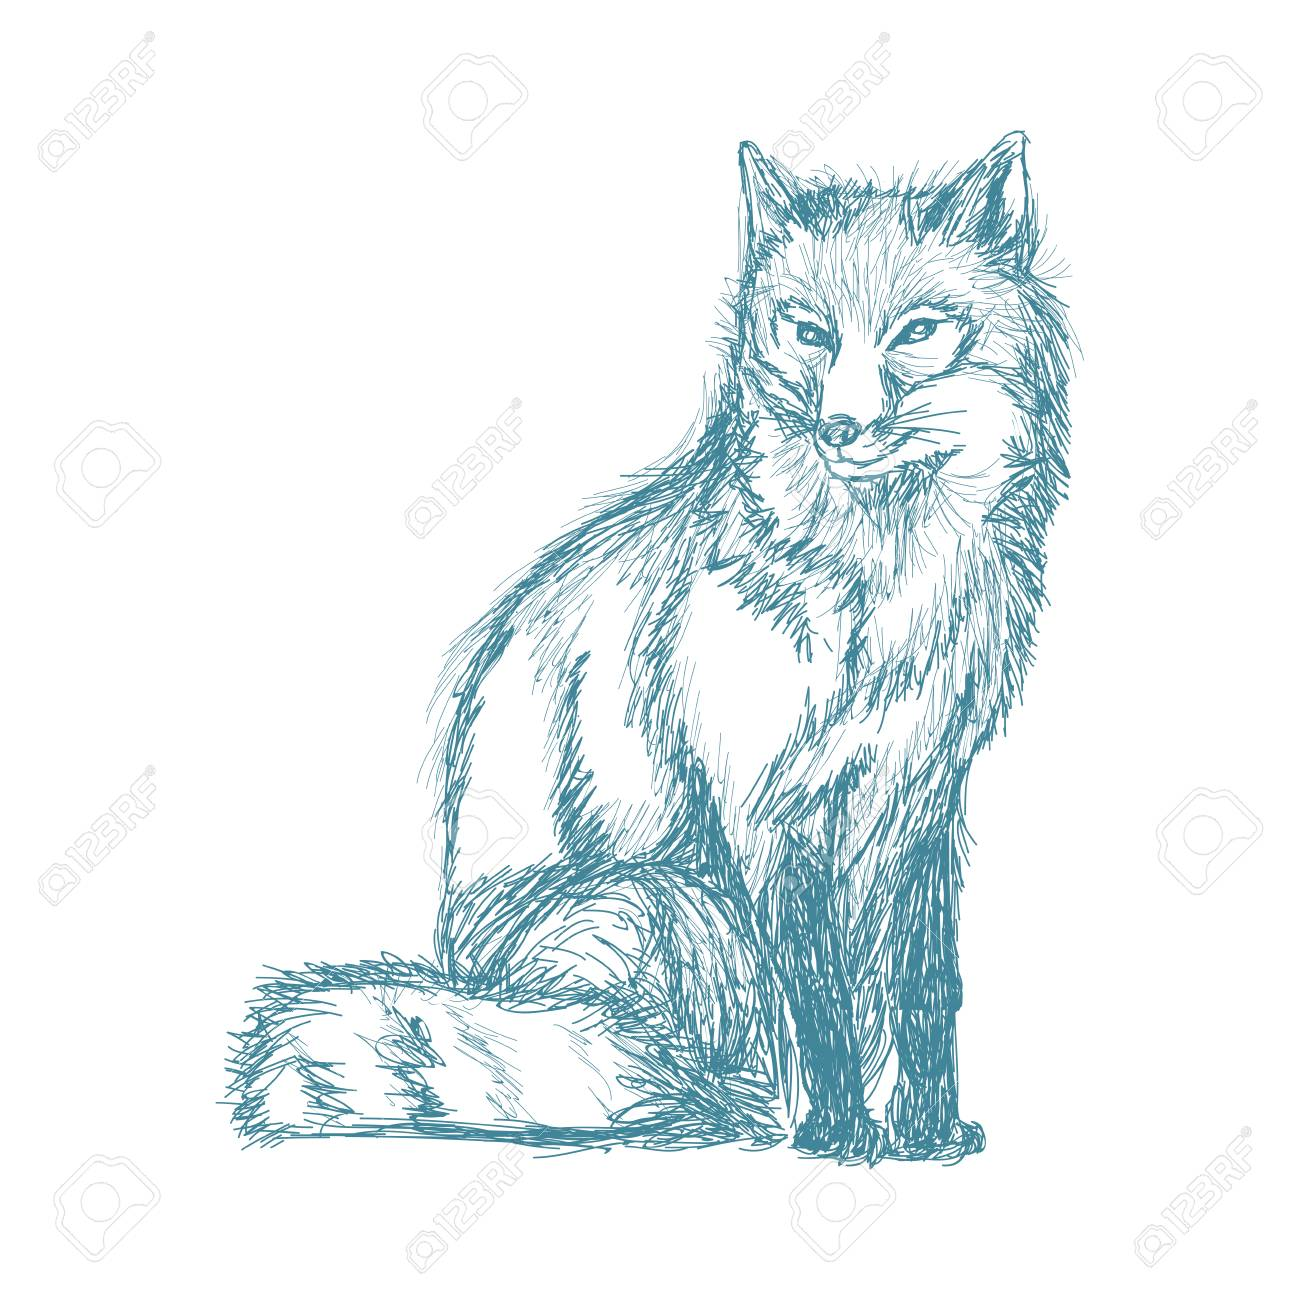 Vector wolf wildlife animal image is hand drawn pencil blue sketch of wolf vector illustration